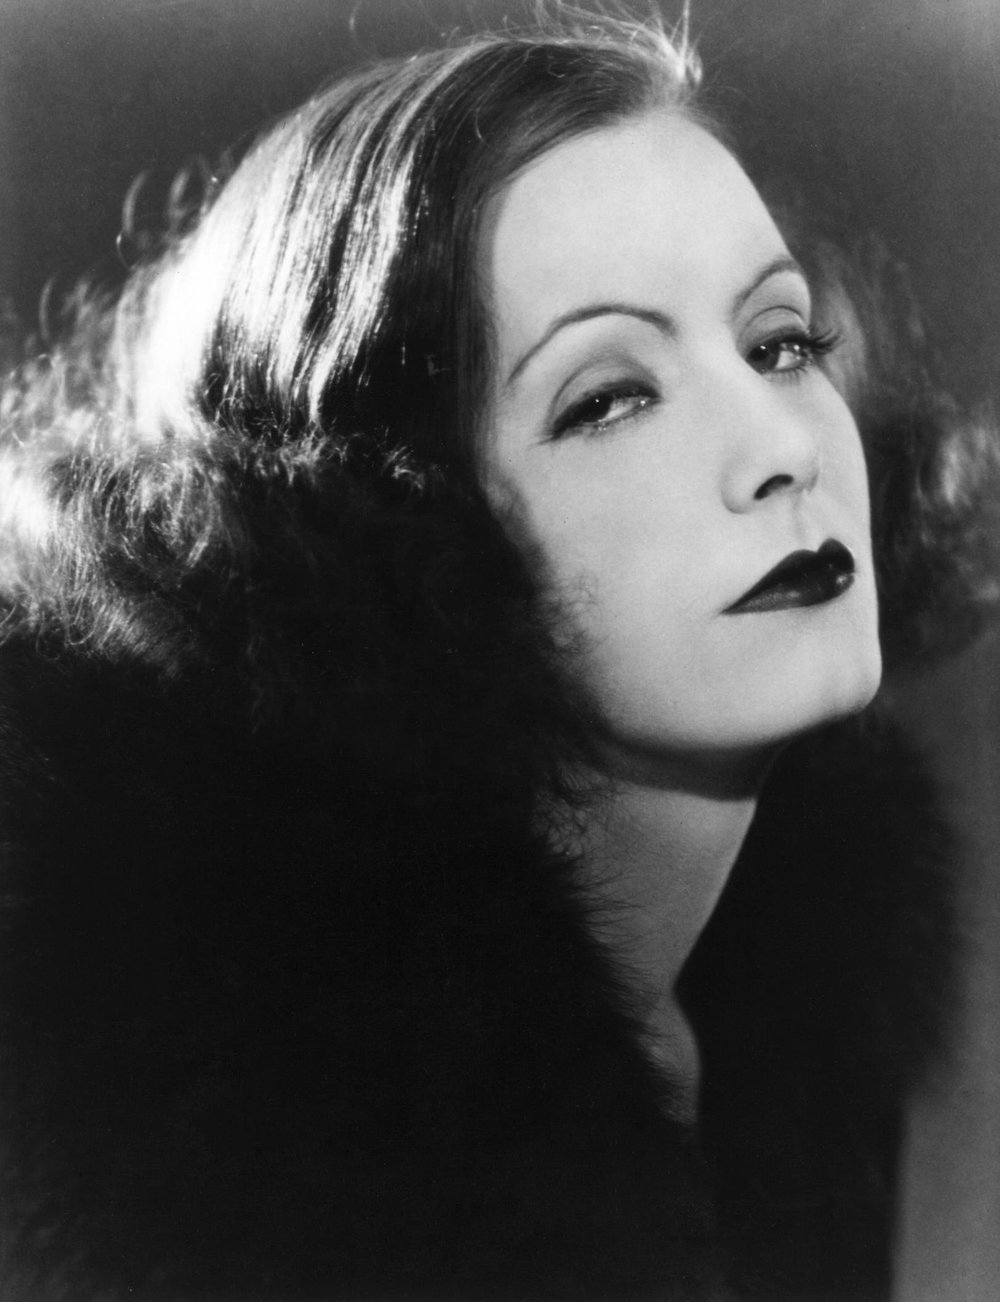 Greta Garbo - About Greta Garbo, Bette said,